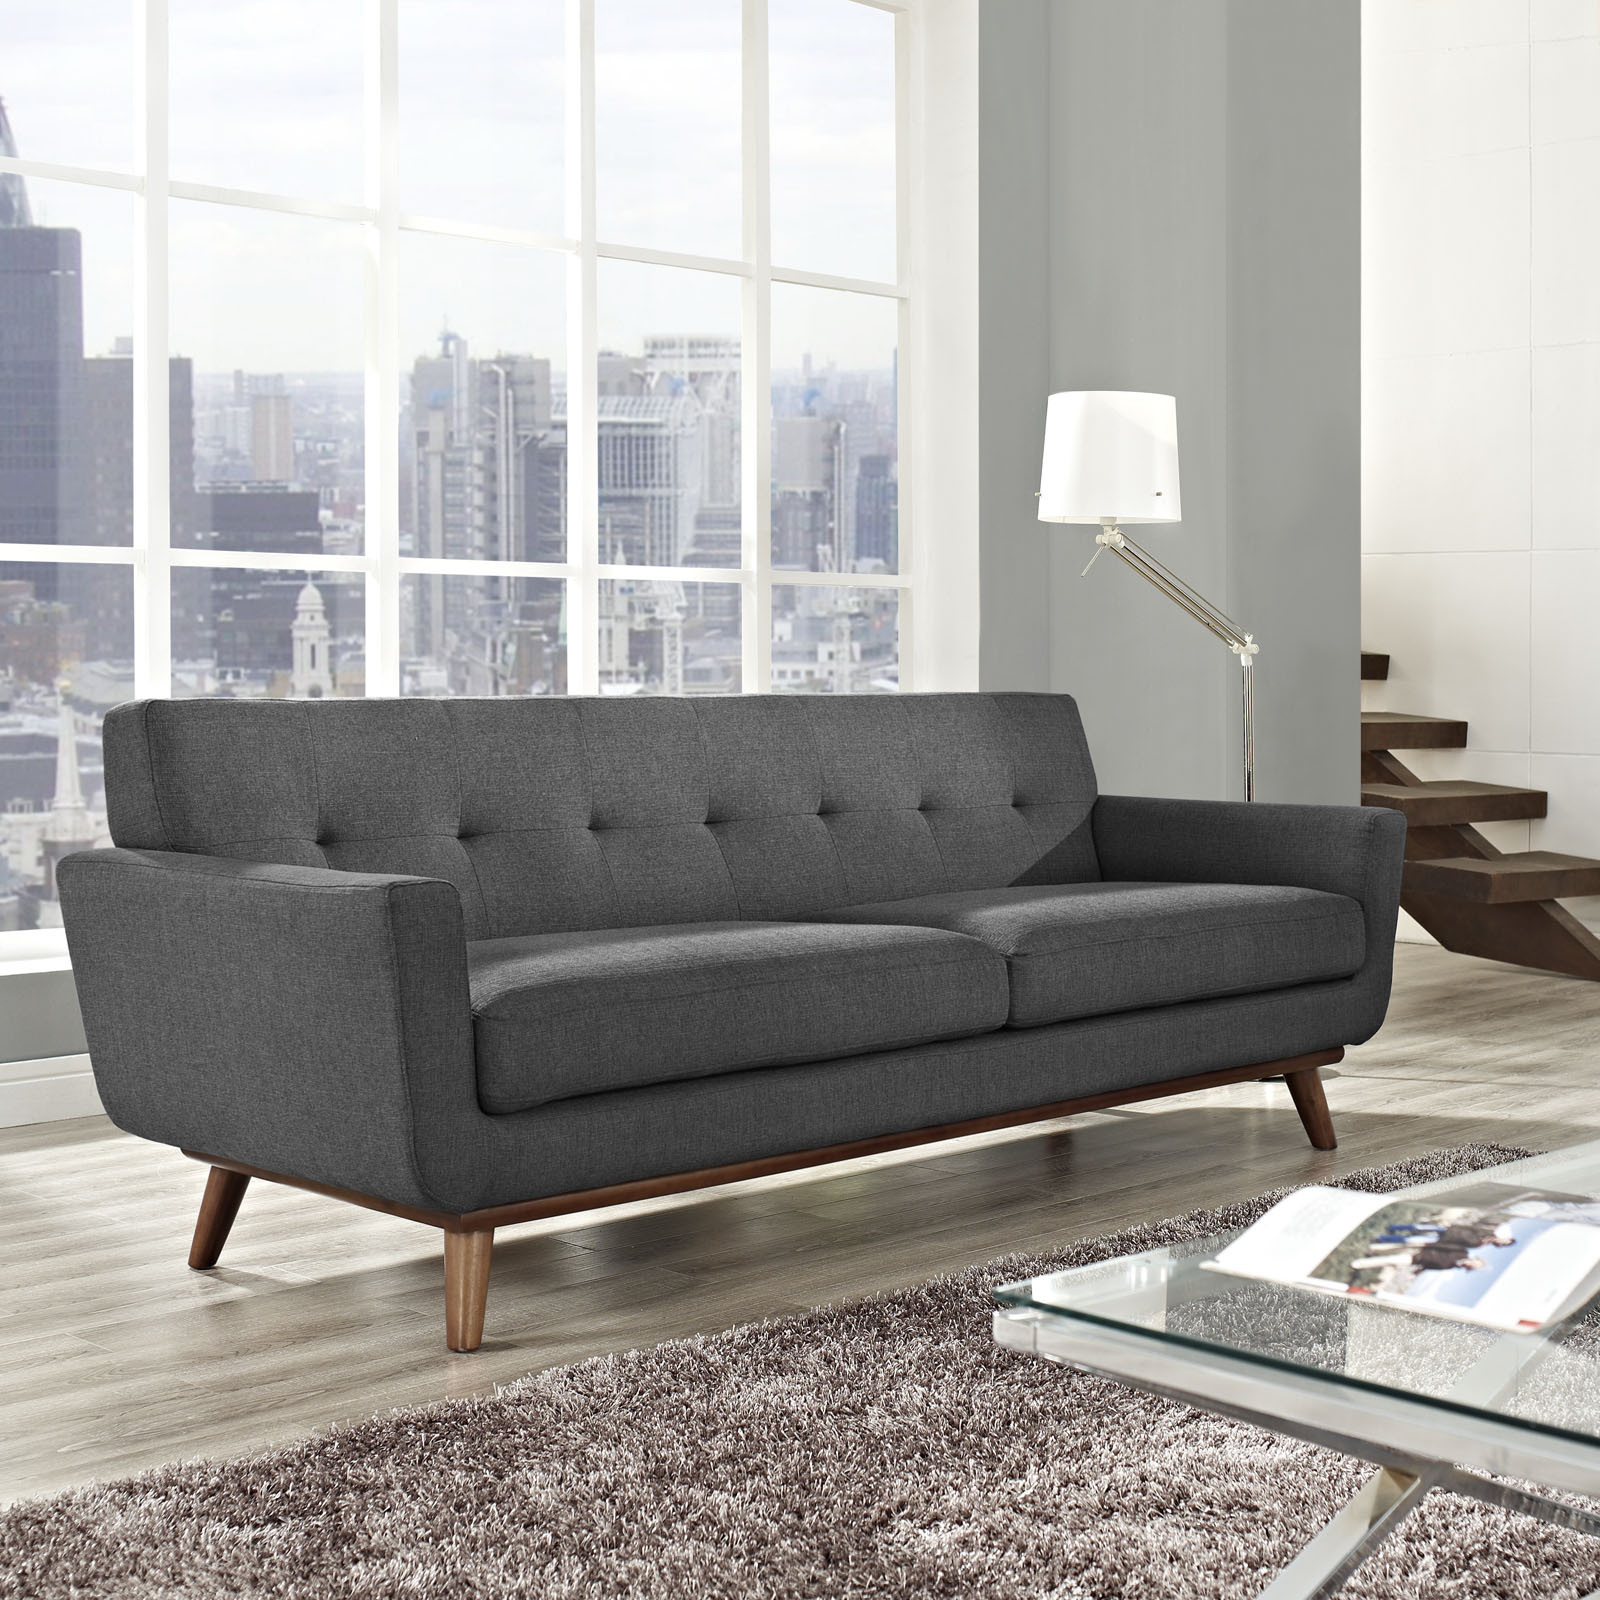 Mid Century Modern Sofas: 5 Couch Styles For Your Living Room From Boho To Industrial